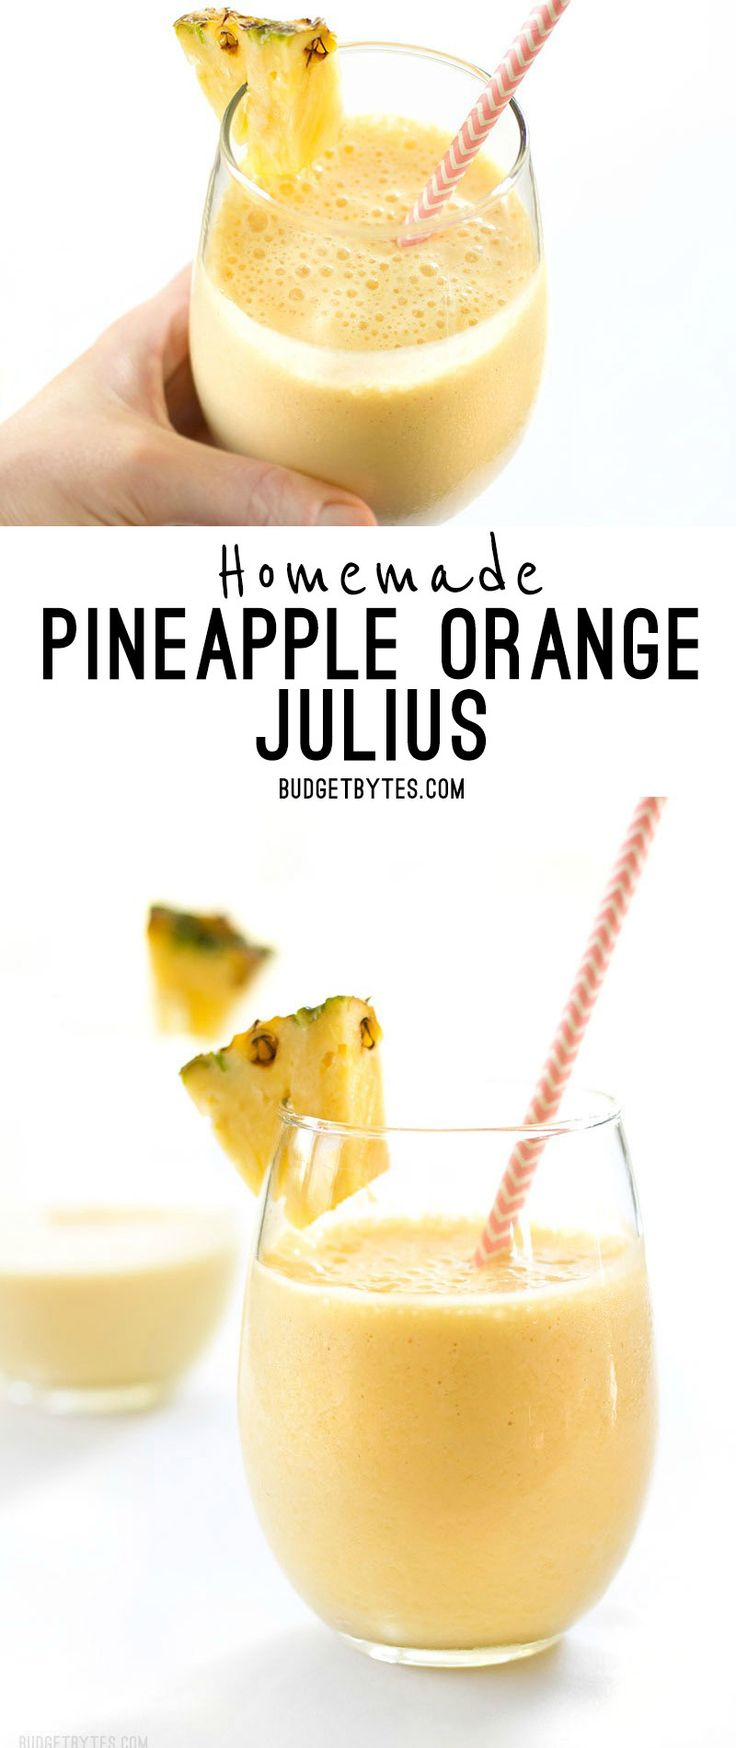 When you need a tropical escape this homemade Pineapple Orange Julius is the perfect sweet and creamy frozen drink to take you away. @budgetbytes